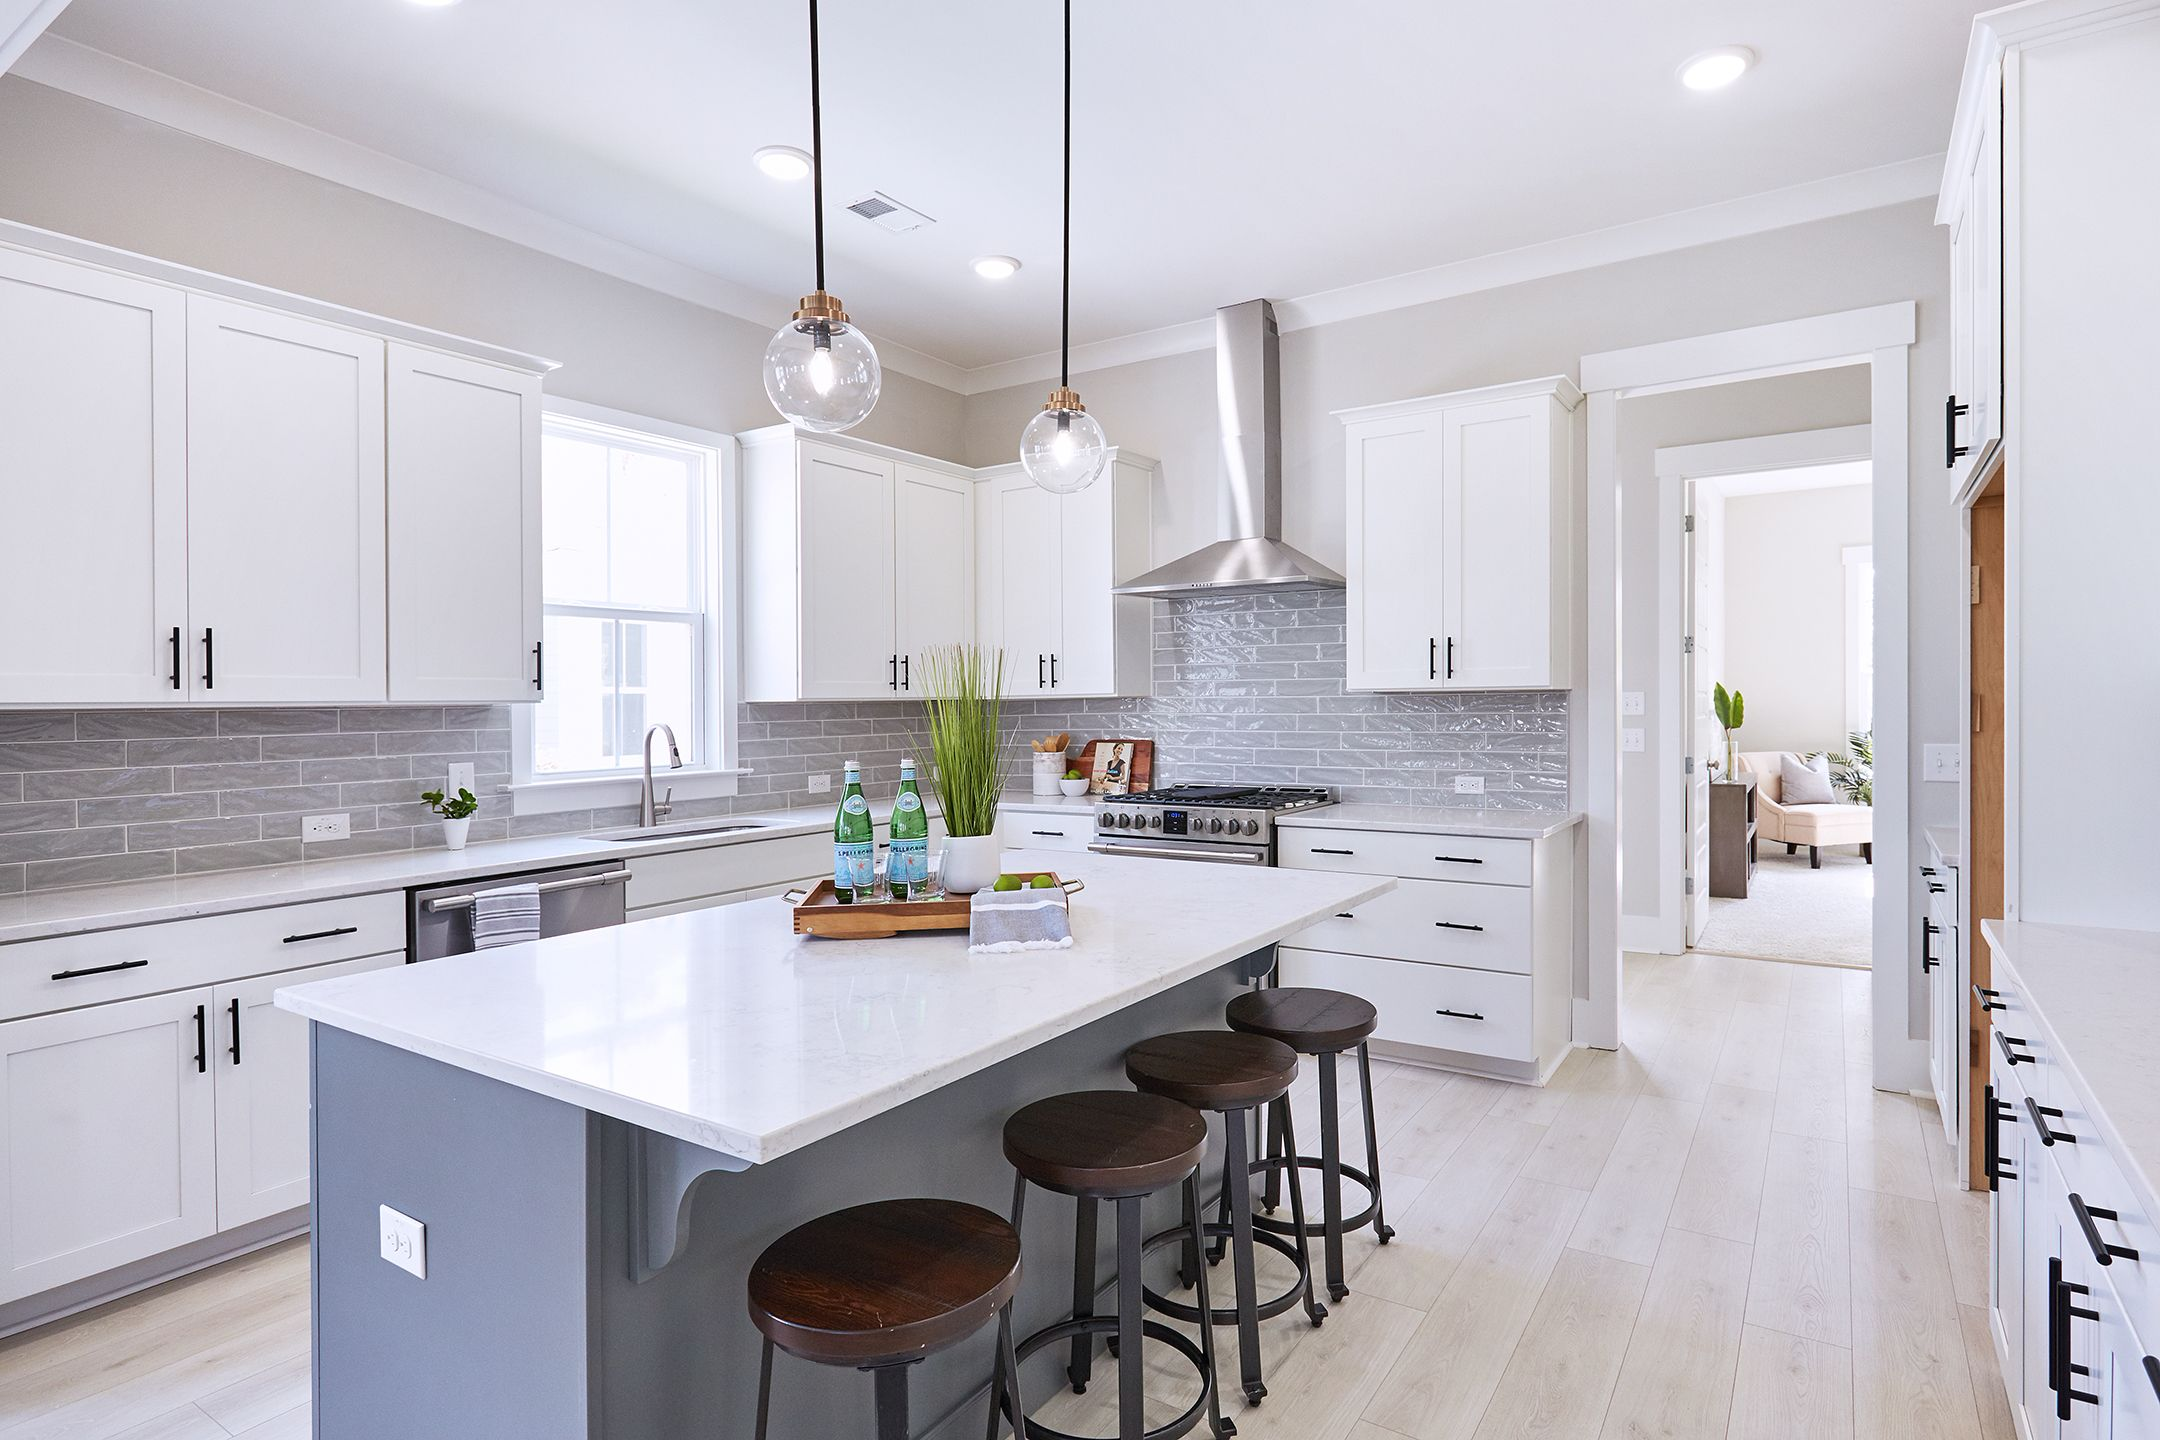 Kitchen featured in the Rutledge By Homes by Dickerson in Charleston, SC